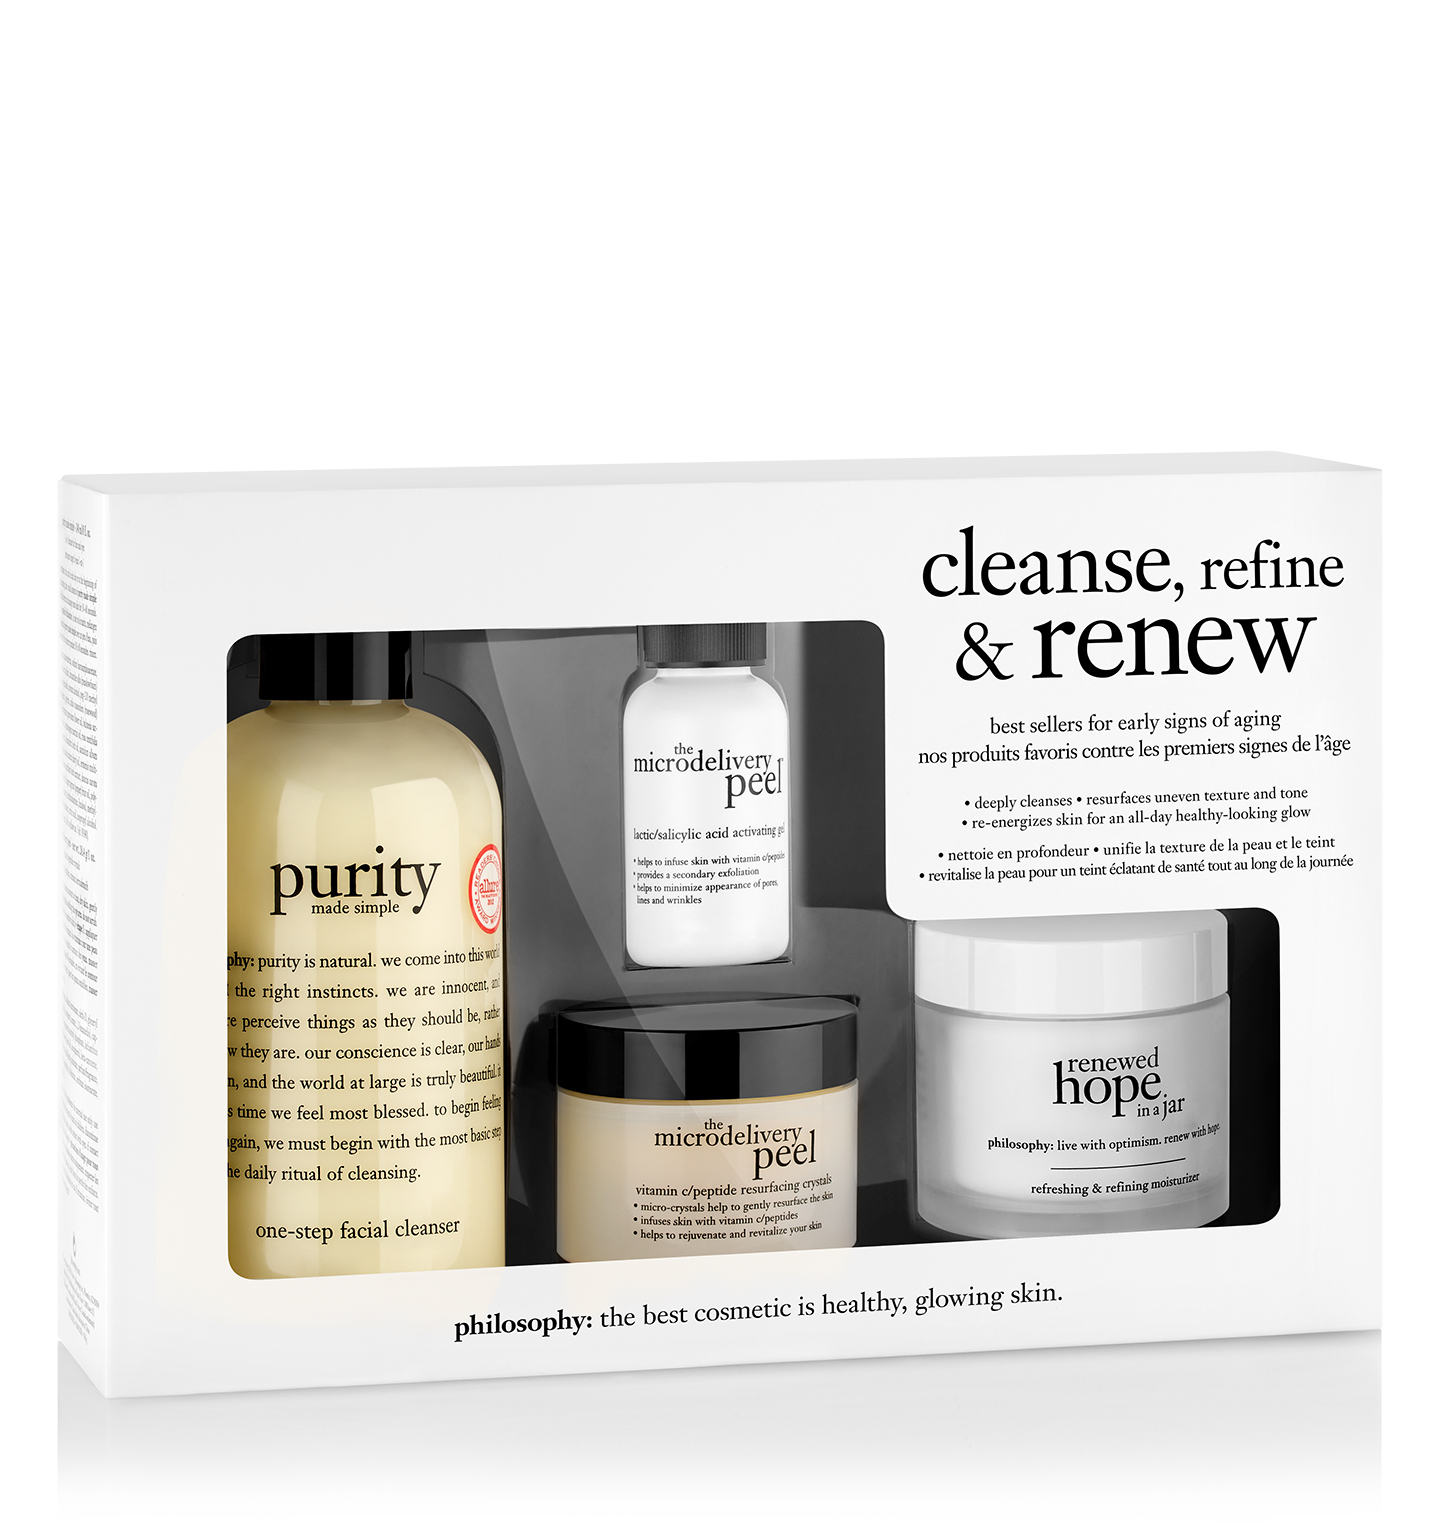 philosophy, cleanse, refine & renew kit